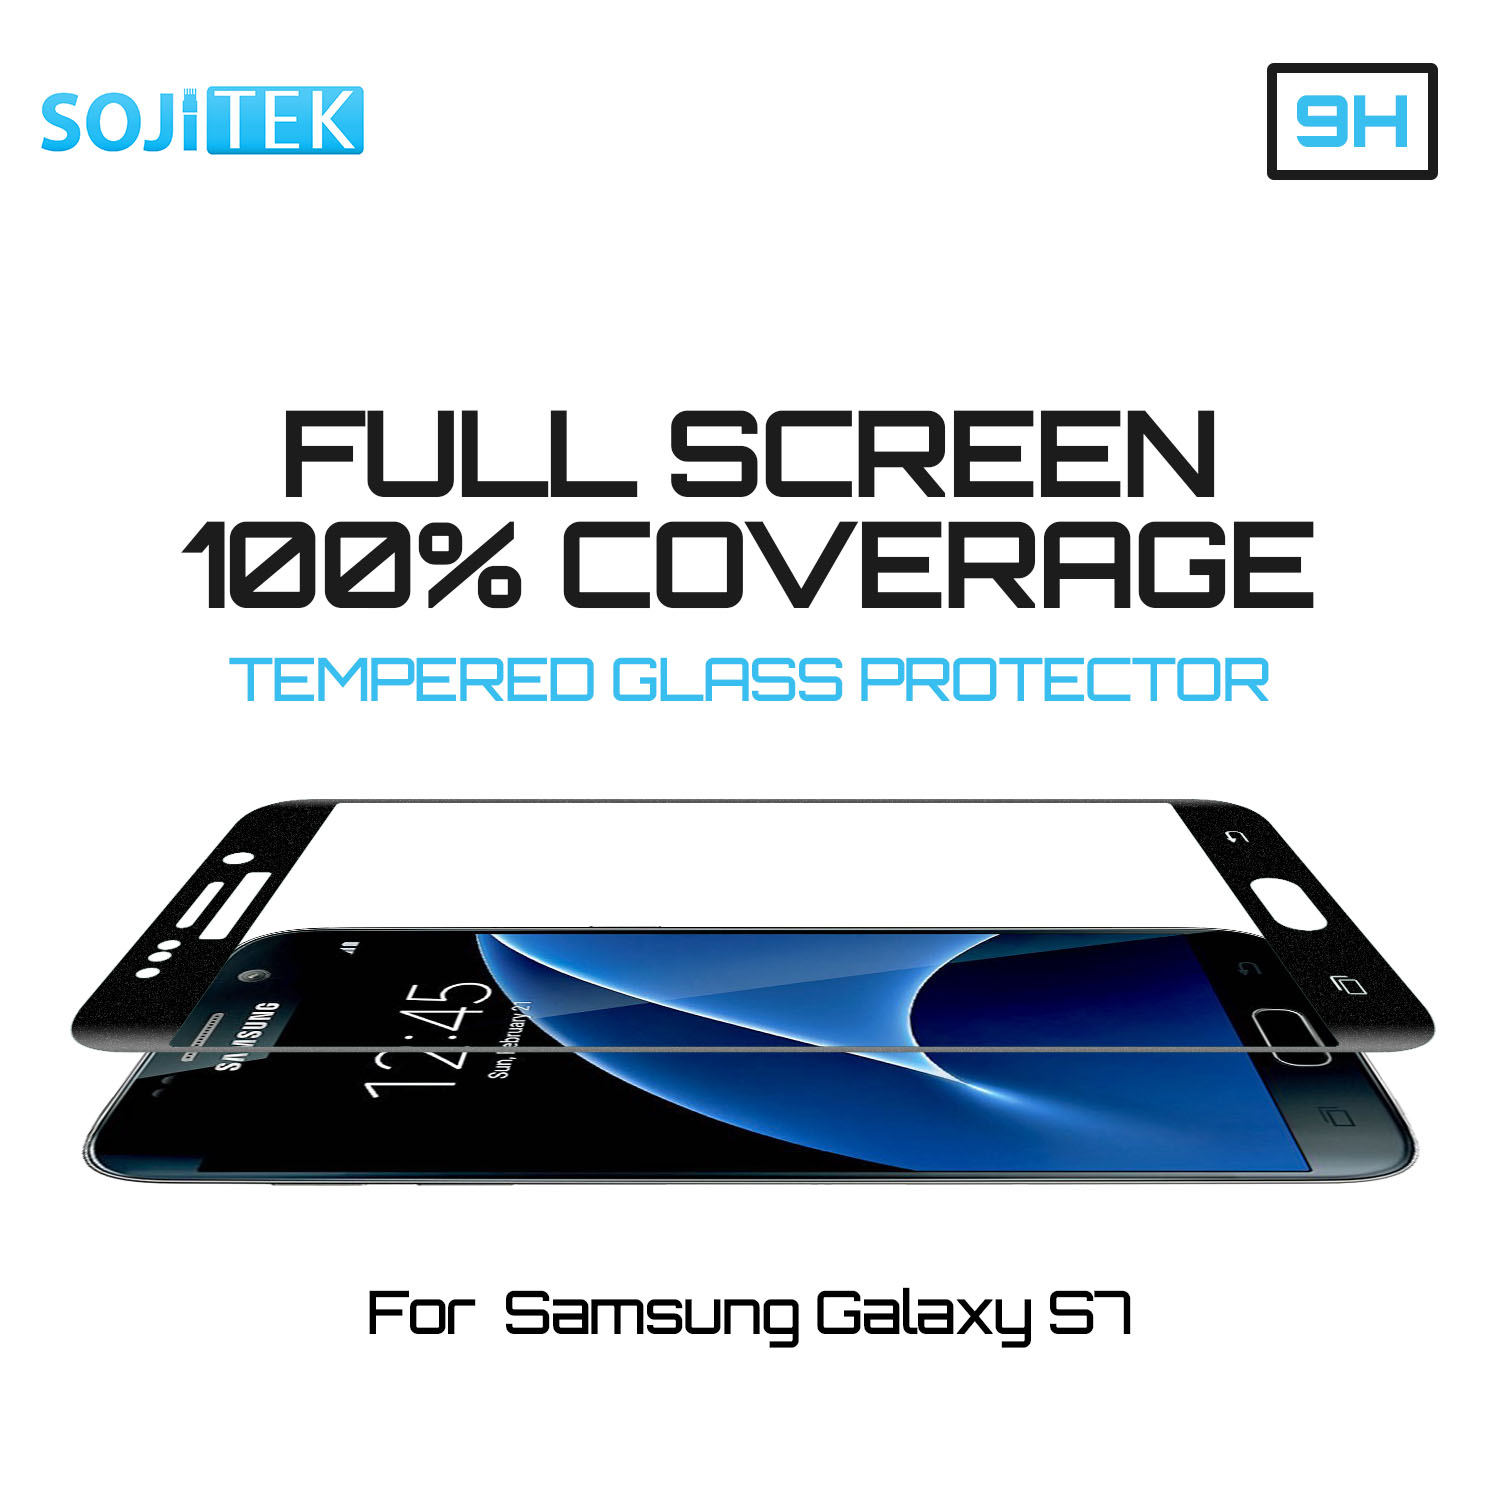 SOJITEK Samsung Galaxy S7 100% Full Screen Coverage (NOT 3D) Including Curved Edge Black Premium Ballistic Tempered Glass Screen Protector w/ Lifetime Replacement Warranty - (HD) Ultra Clear Clarity